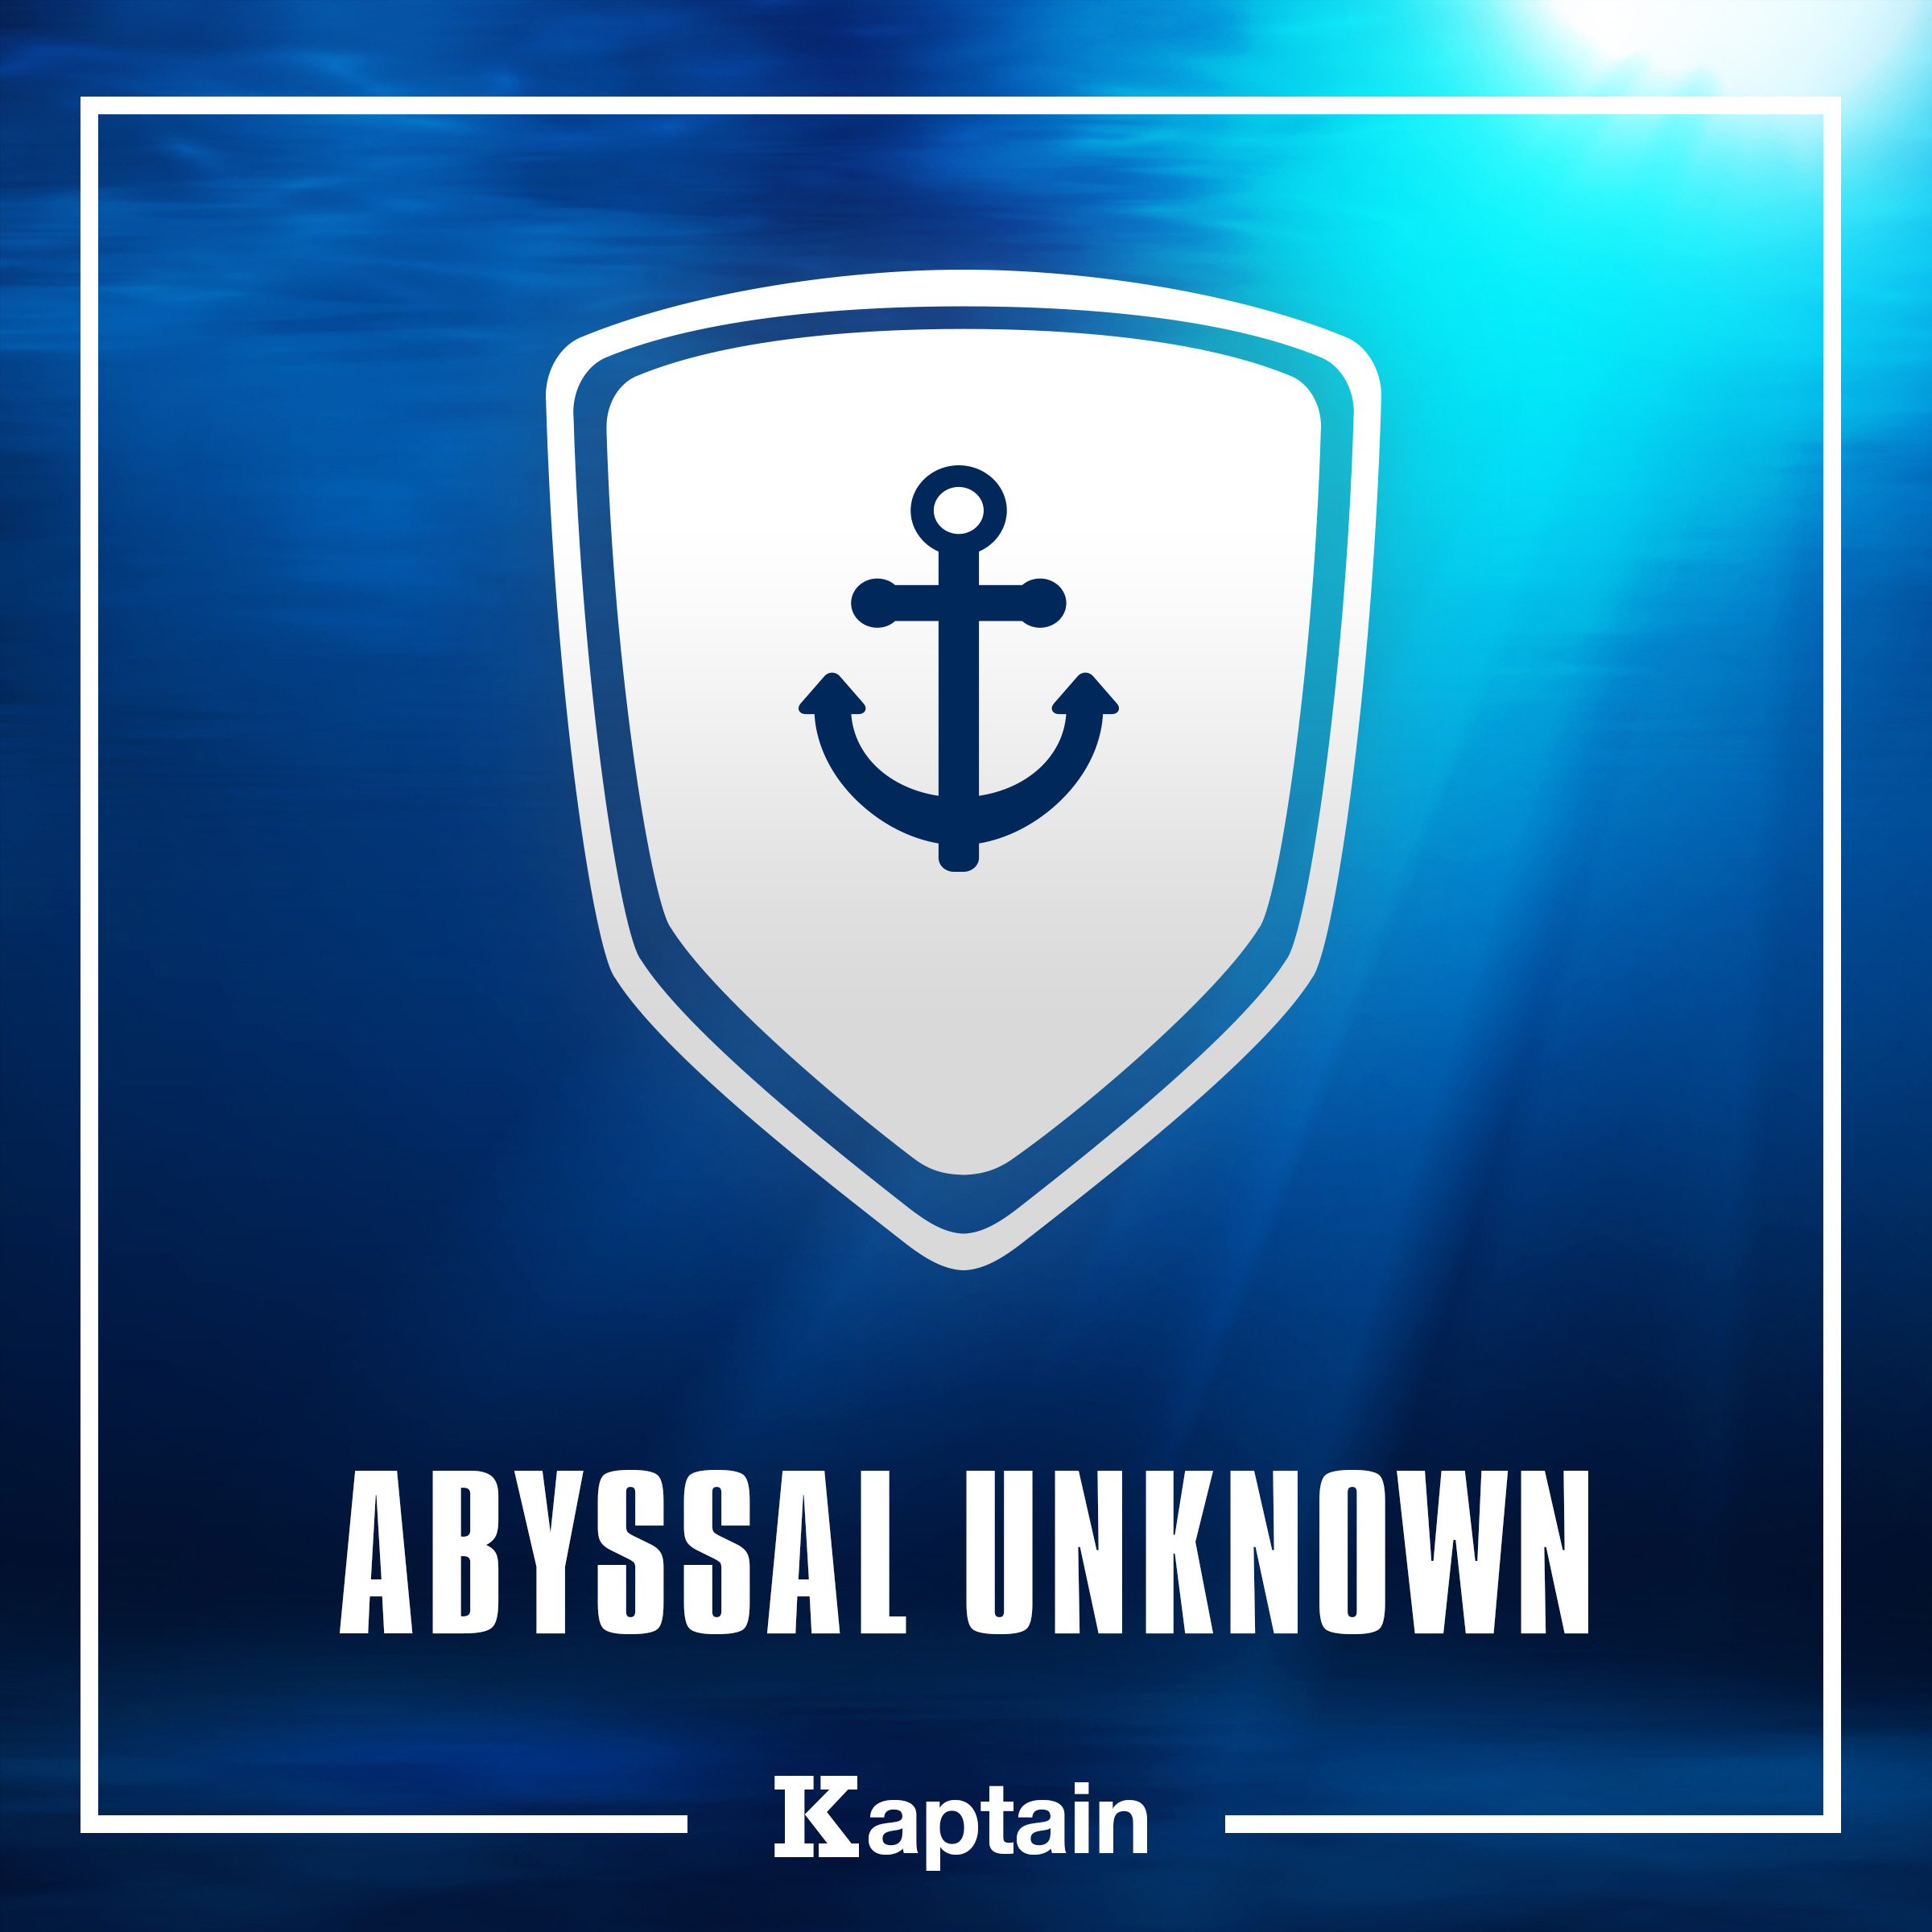 Abyssal Unknown